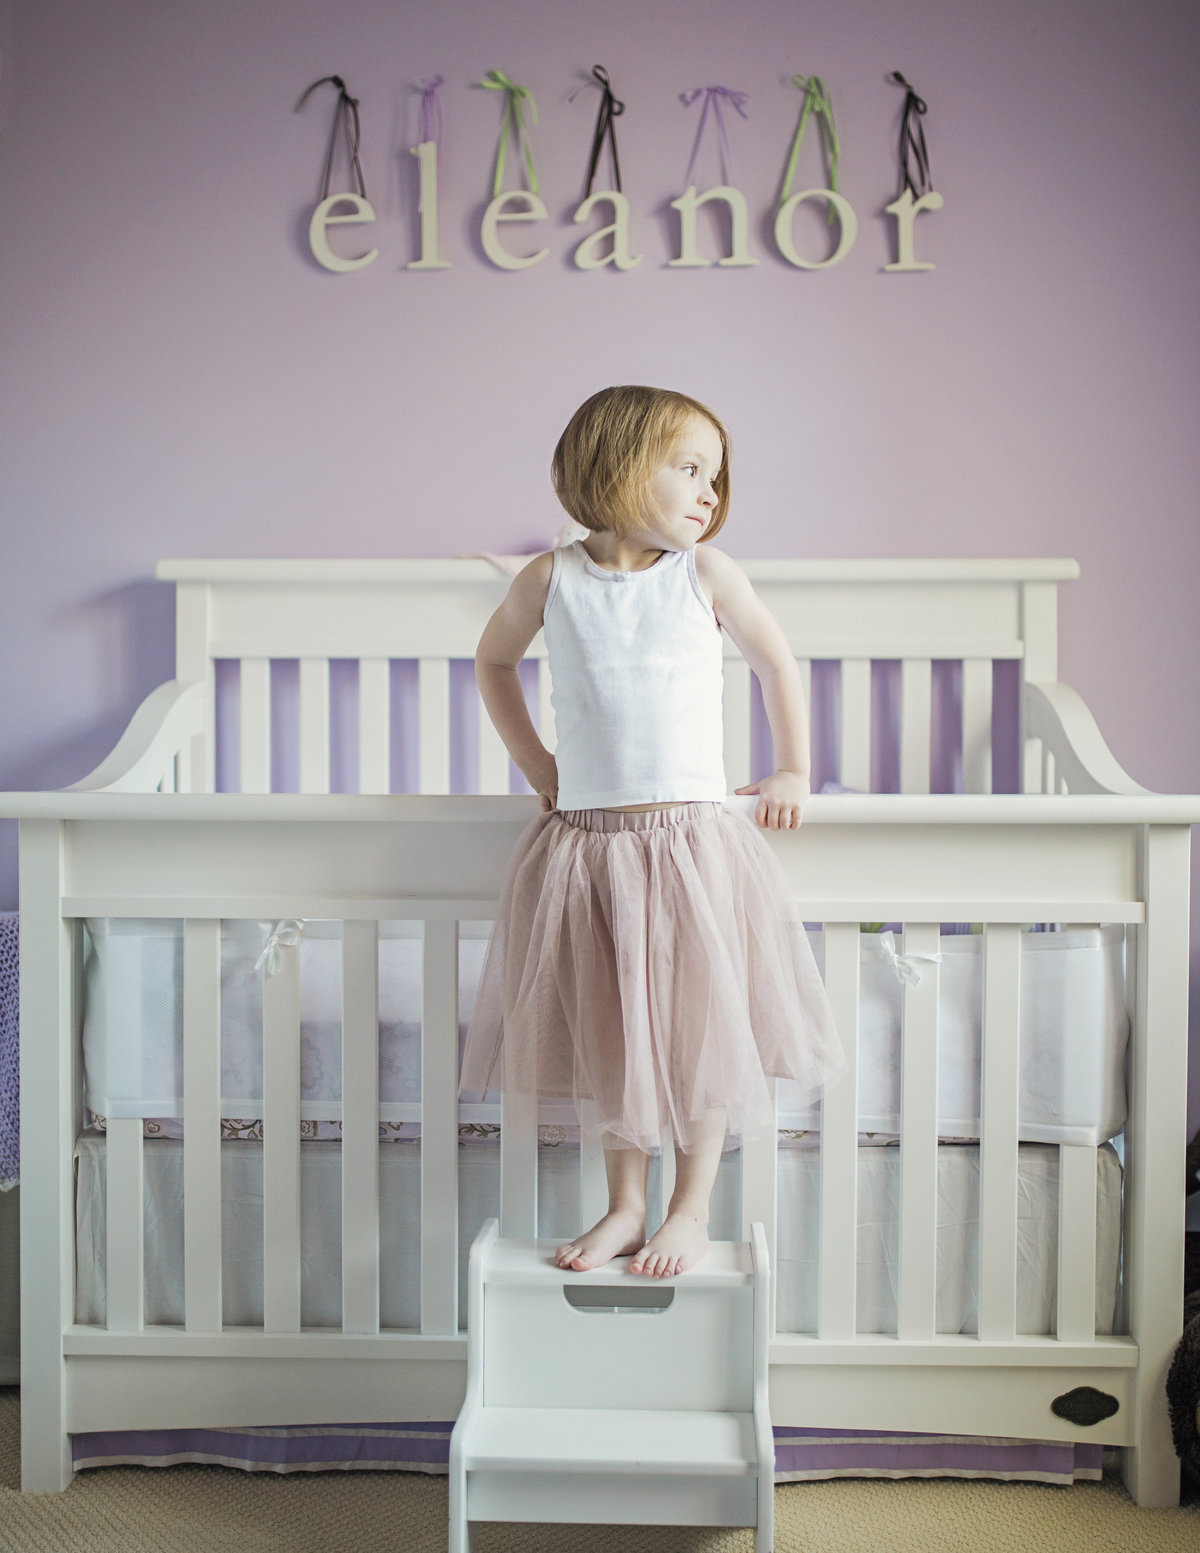 charlotte family photographer creates a beautiful lifestyle portrait of big sister standing by the new baby's crib